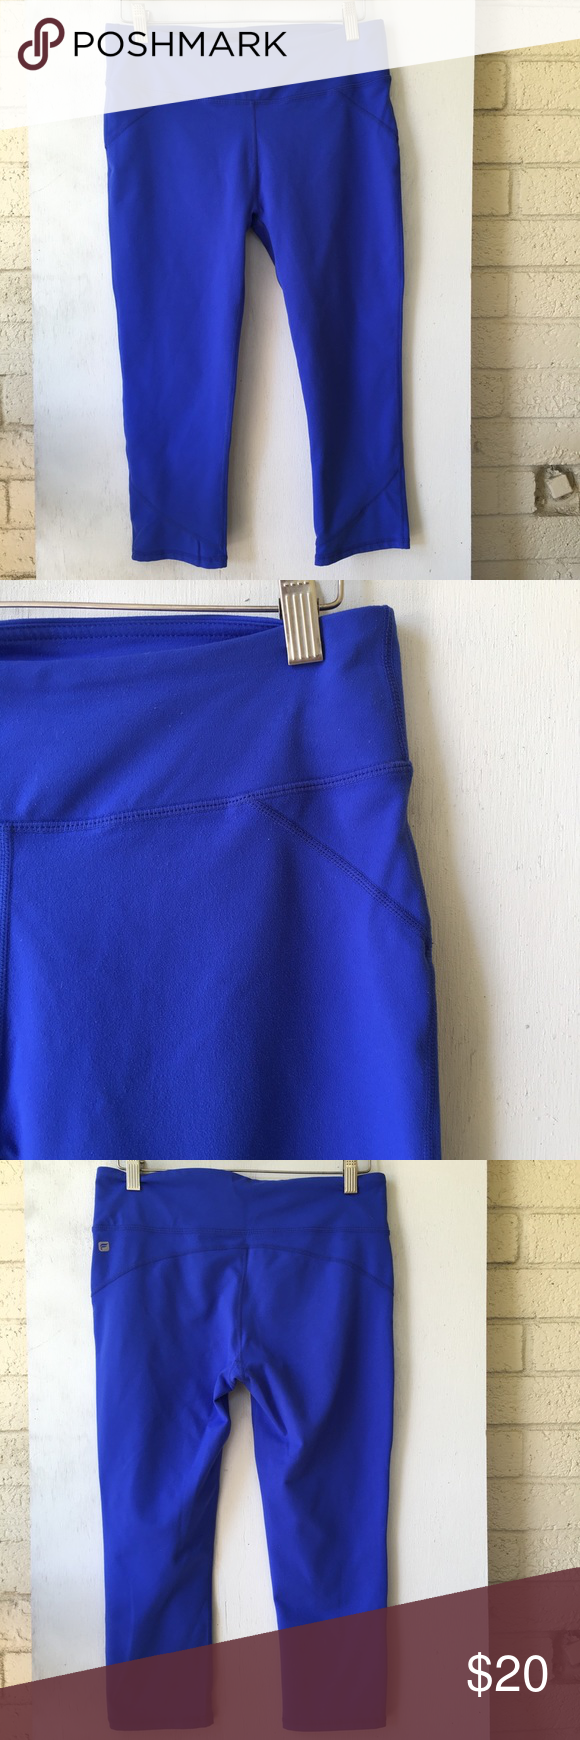 Fabletics Salar crop pants EUC - only worn a handful of times. Mid-rise, Capri length, great workout pants! I removed the size tag because it was so itchy! But they're definitely a medium. Fabletics Pants Leggings